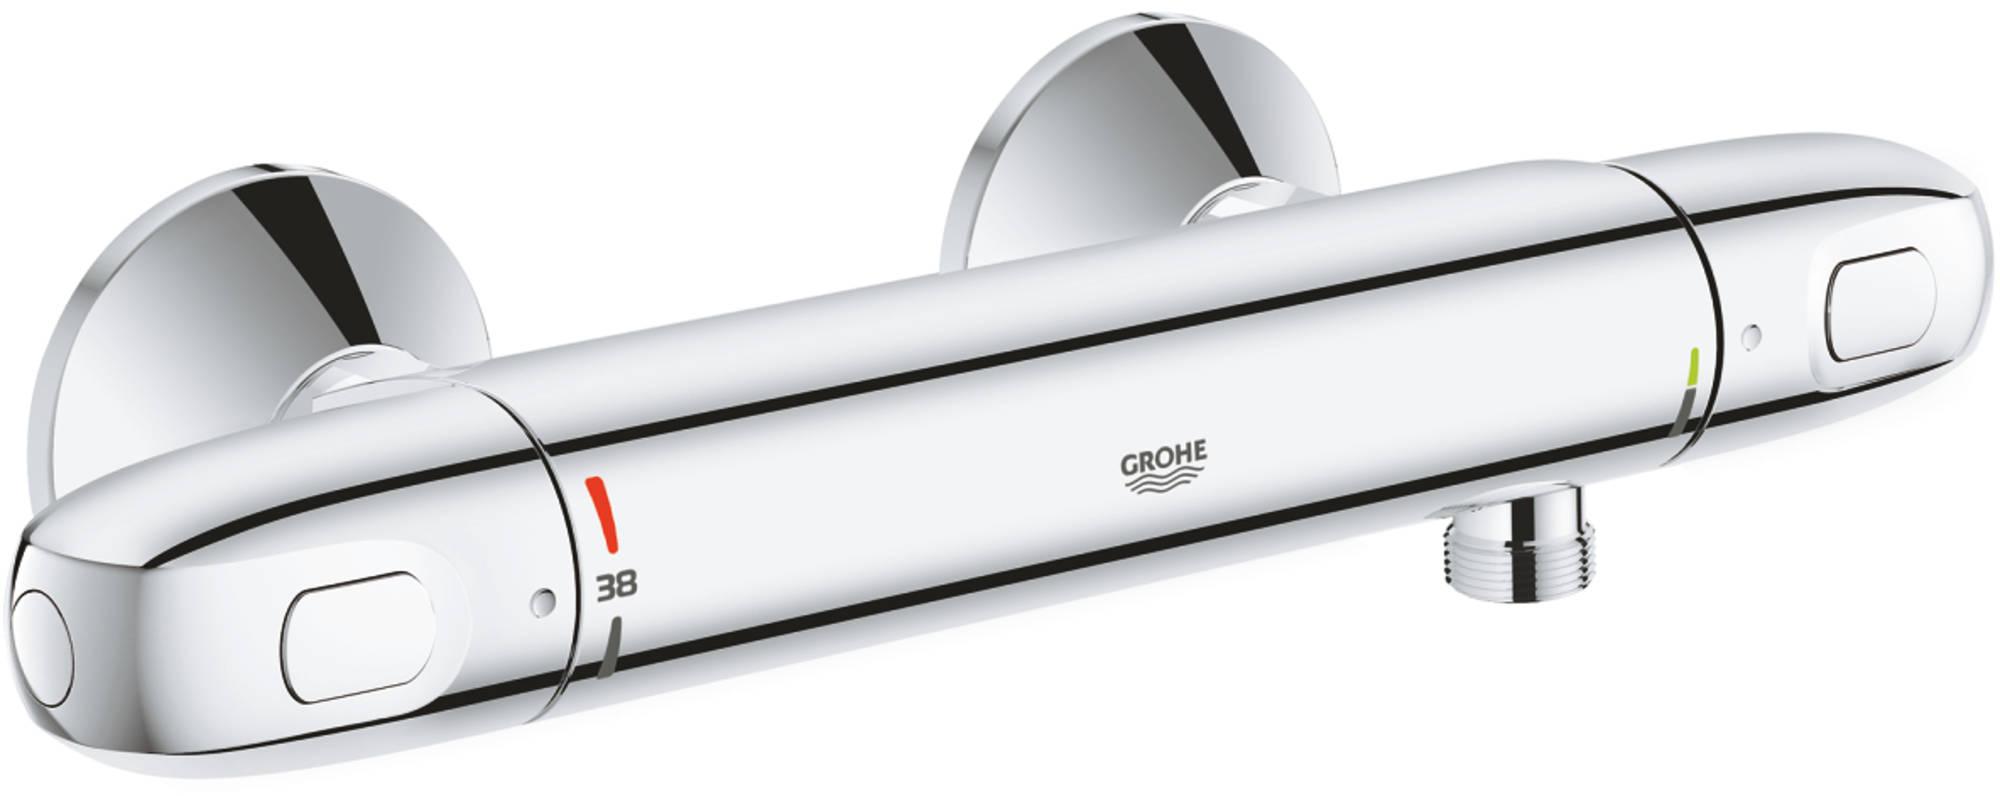 Grohe Grohtherm 1000 New Douchethermostaat Chroom